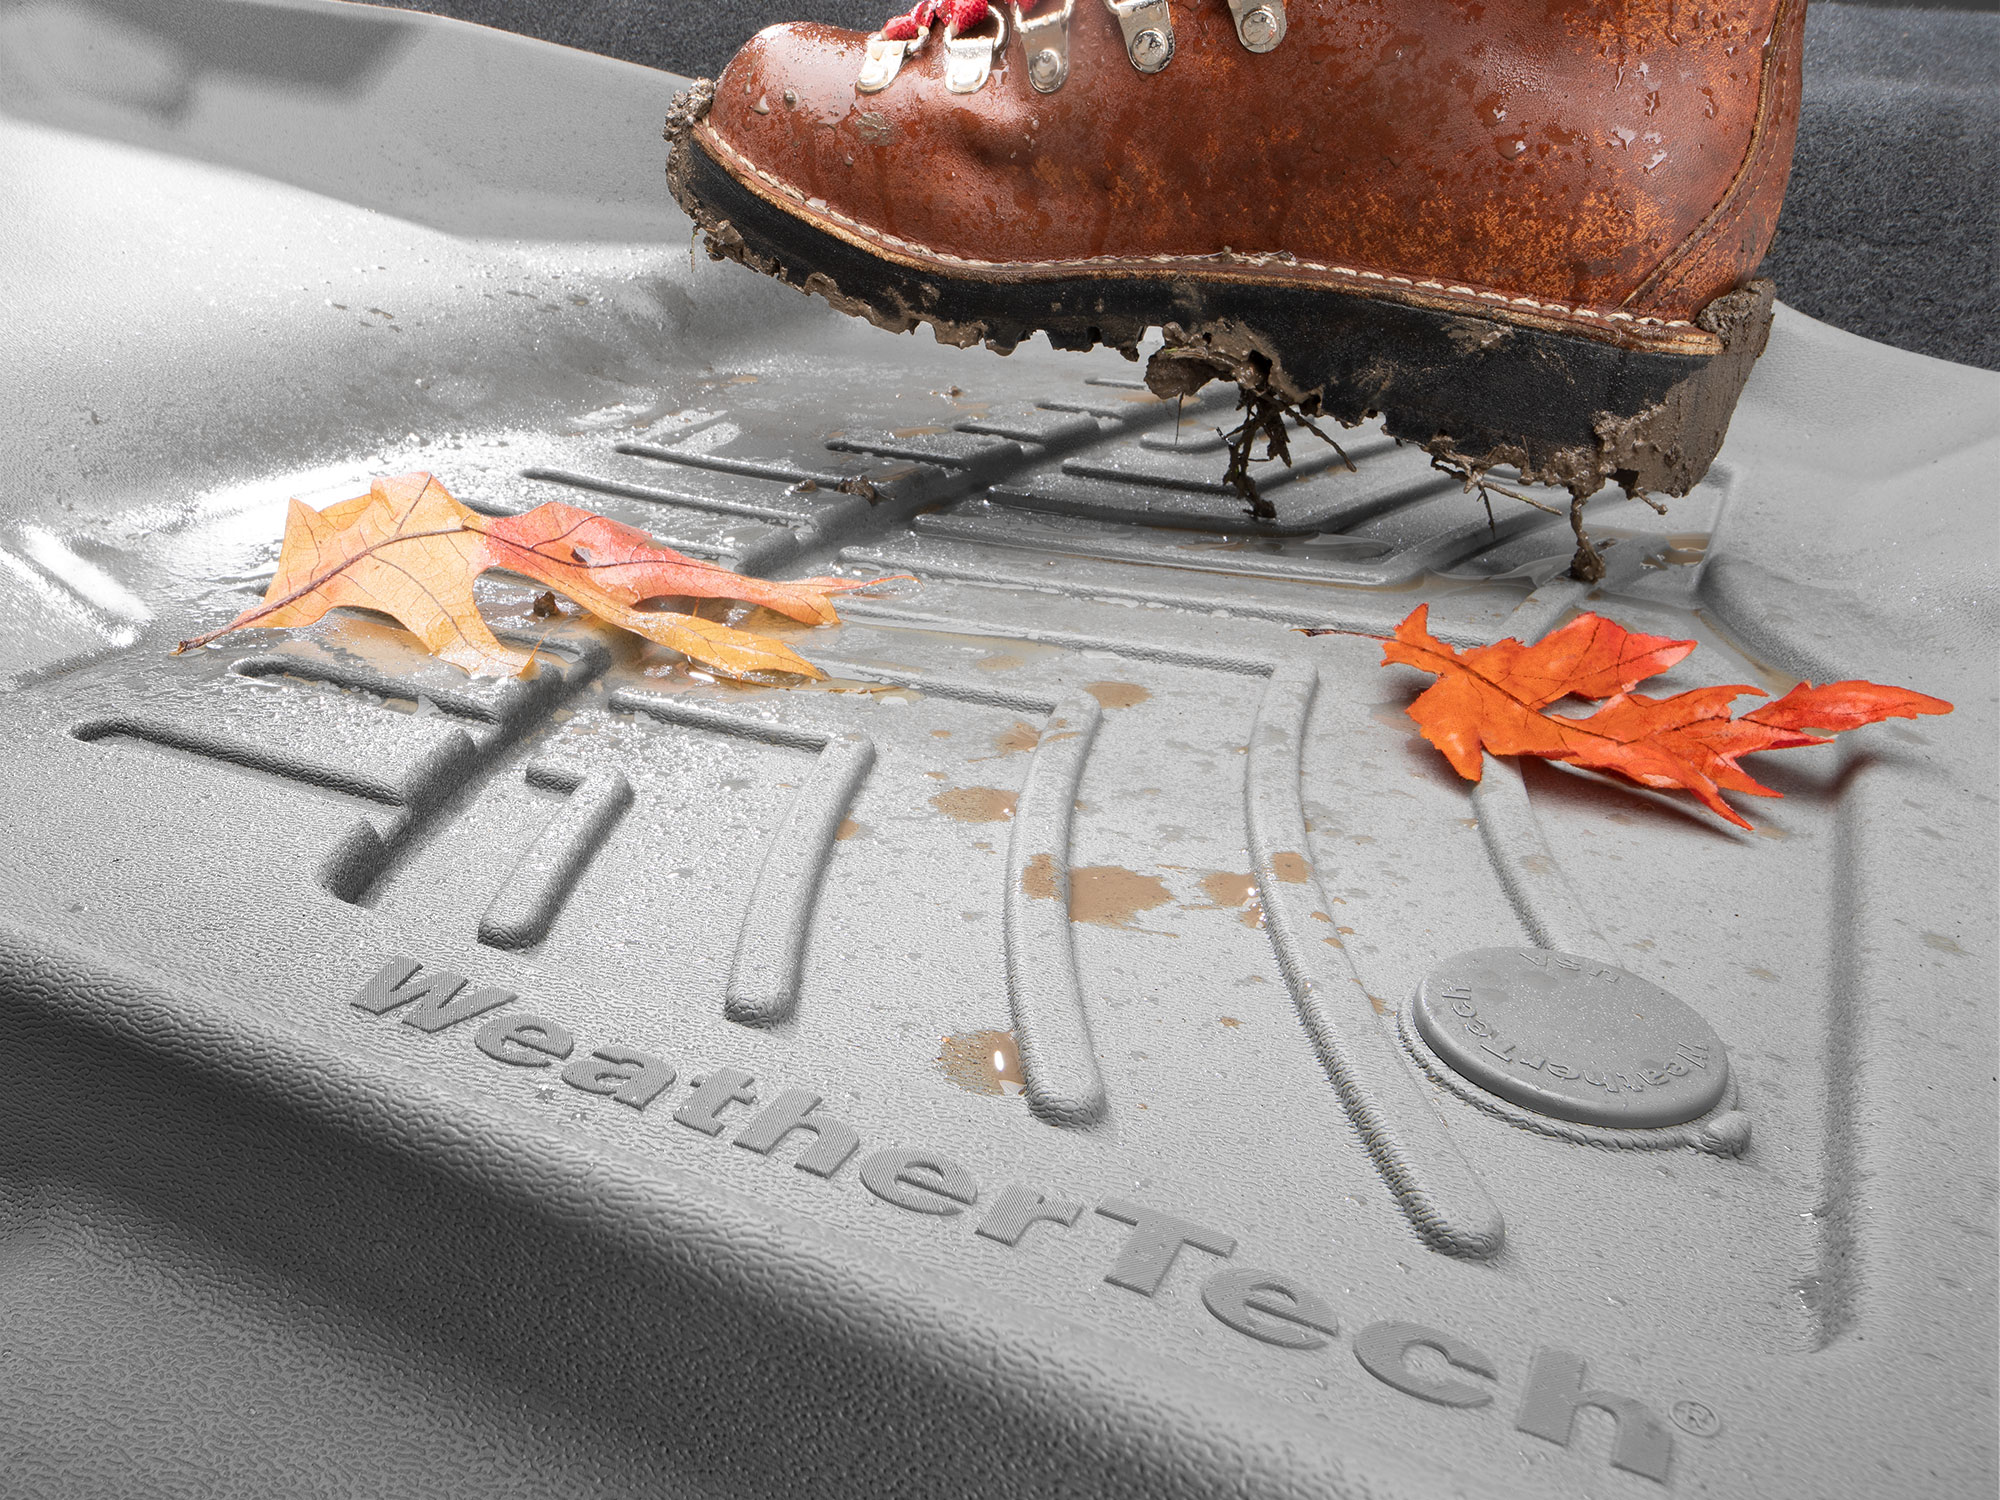 Grey WeatherTech FloorLiner HP covered in muddy water, autumn leaves and a muddy boot.